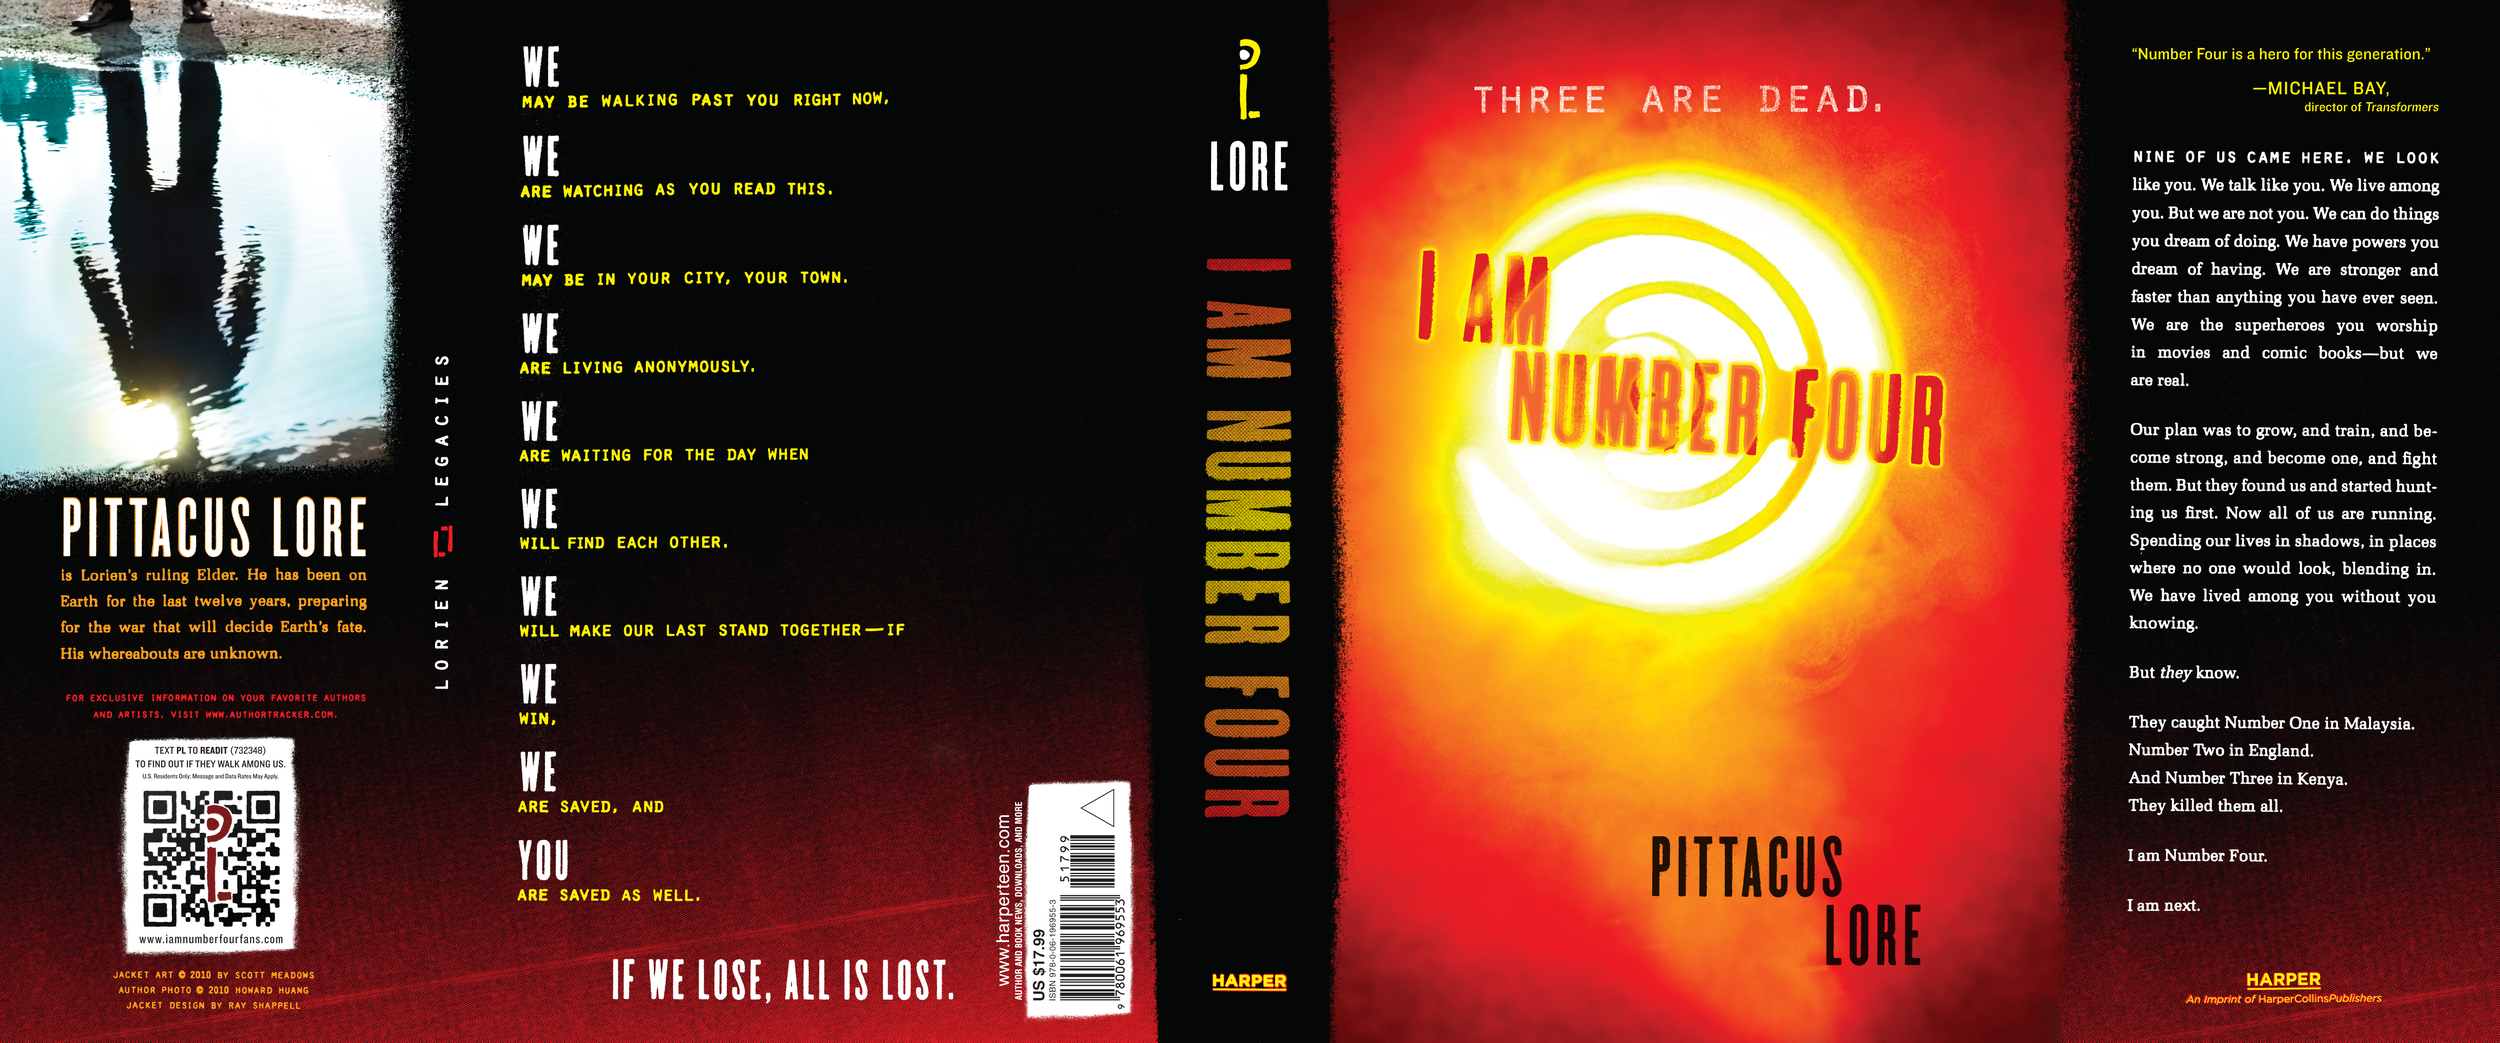 I Am Number Four JKT des4.1cmyk3-1.jpg